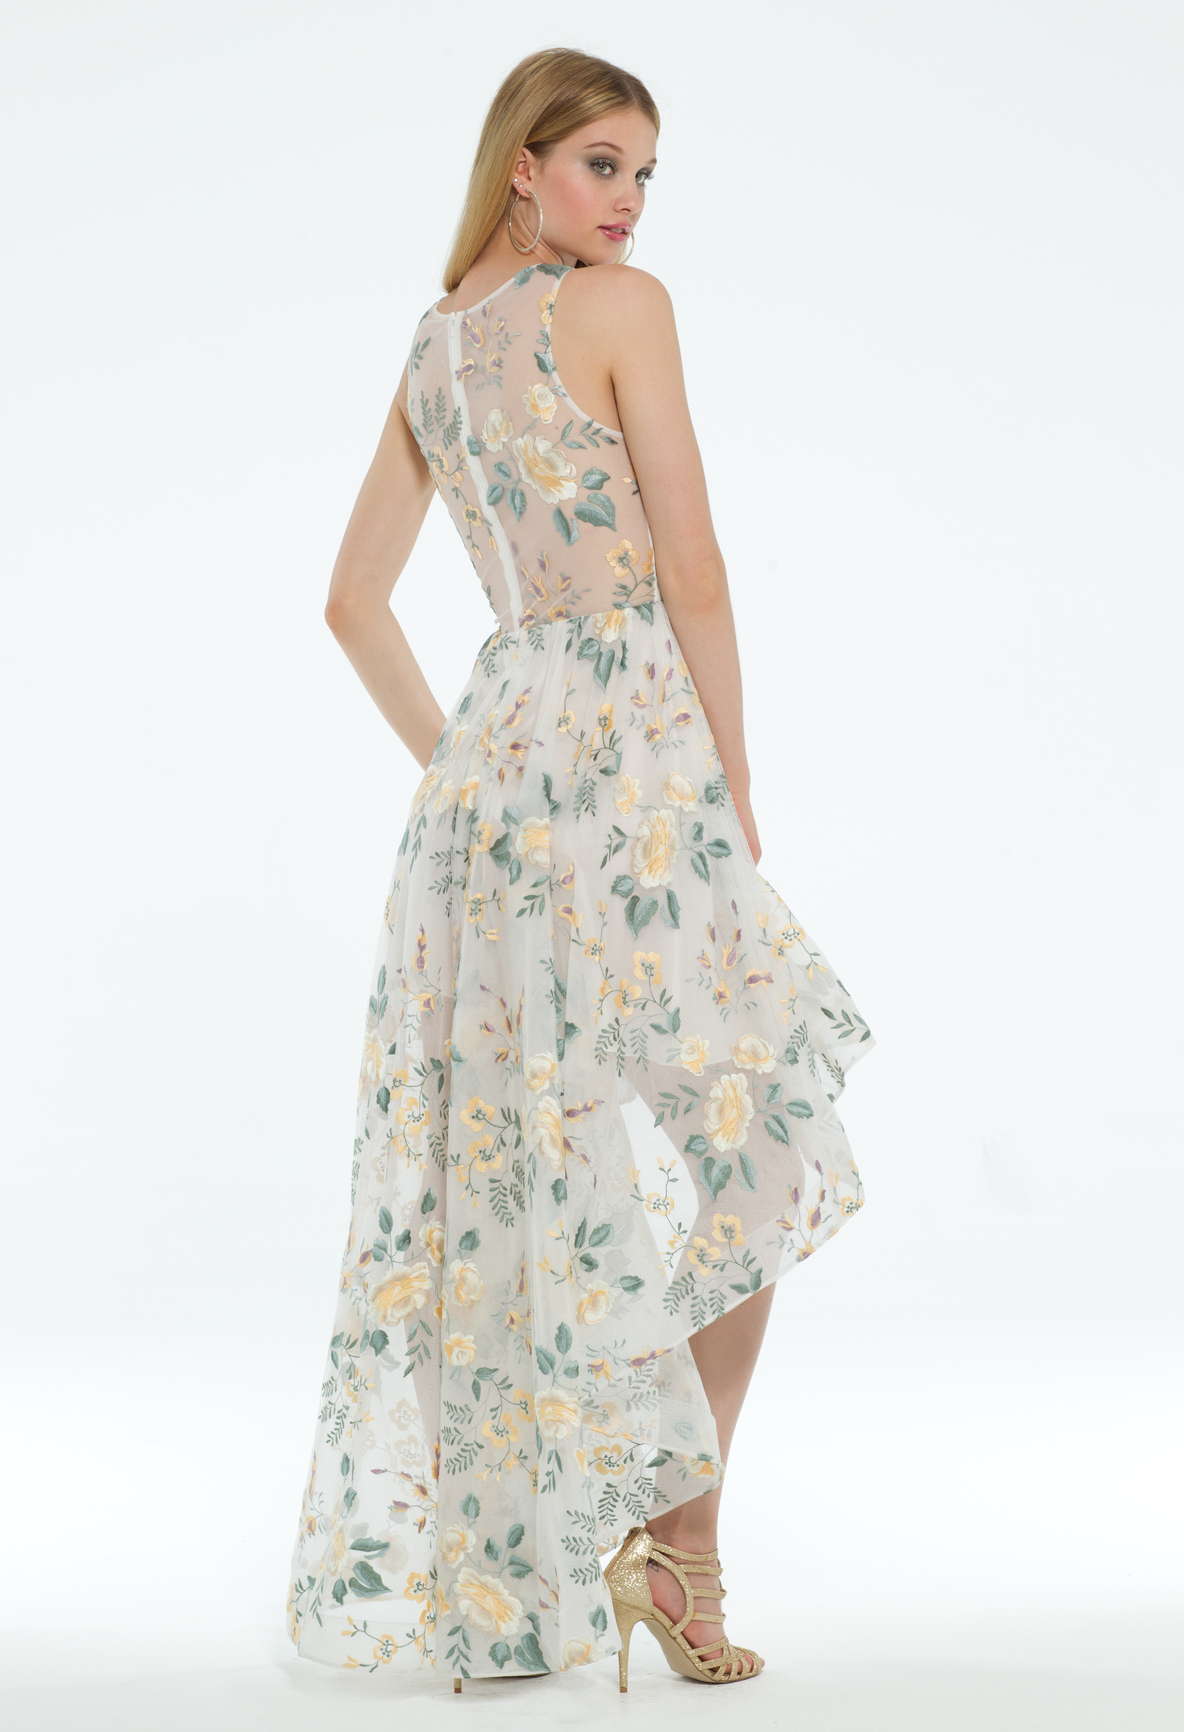 This Floral Cocktail Dress Is Garden Party Perfection With Its Embroidered Dress Style High Low Skirt And Chic Si Gorgeous Dresses Dresses Prom Dresses Long [ 1732 x 1184 Pixel ]